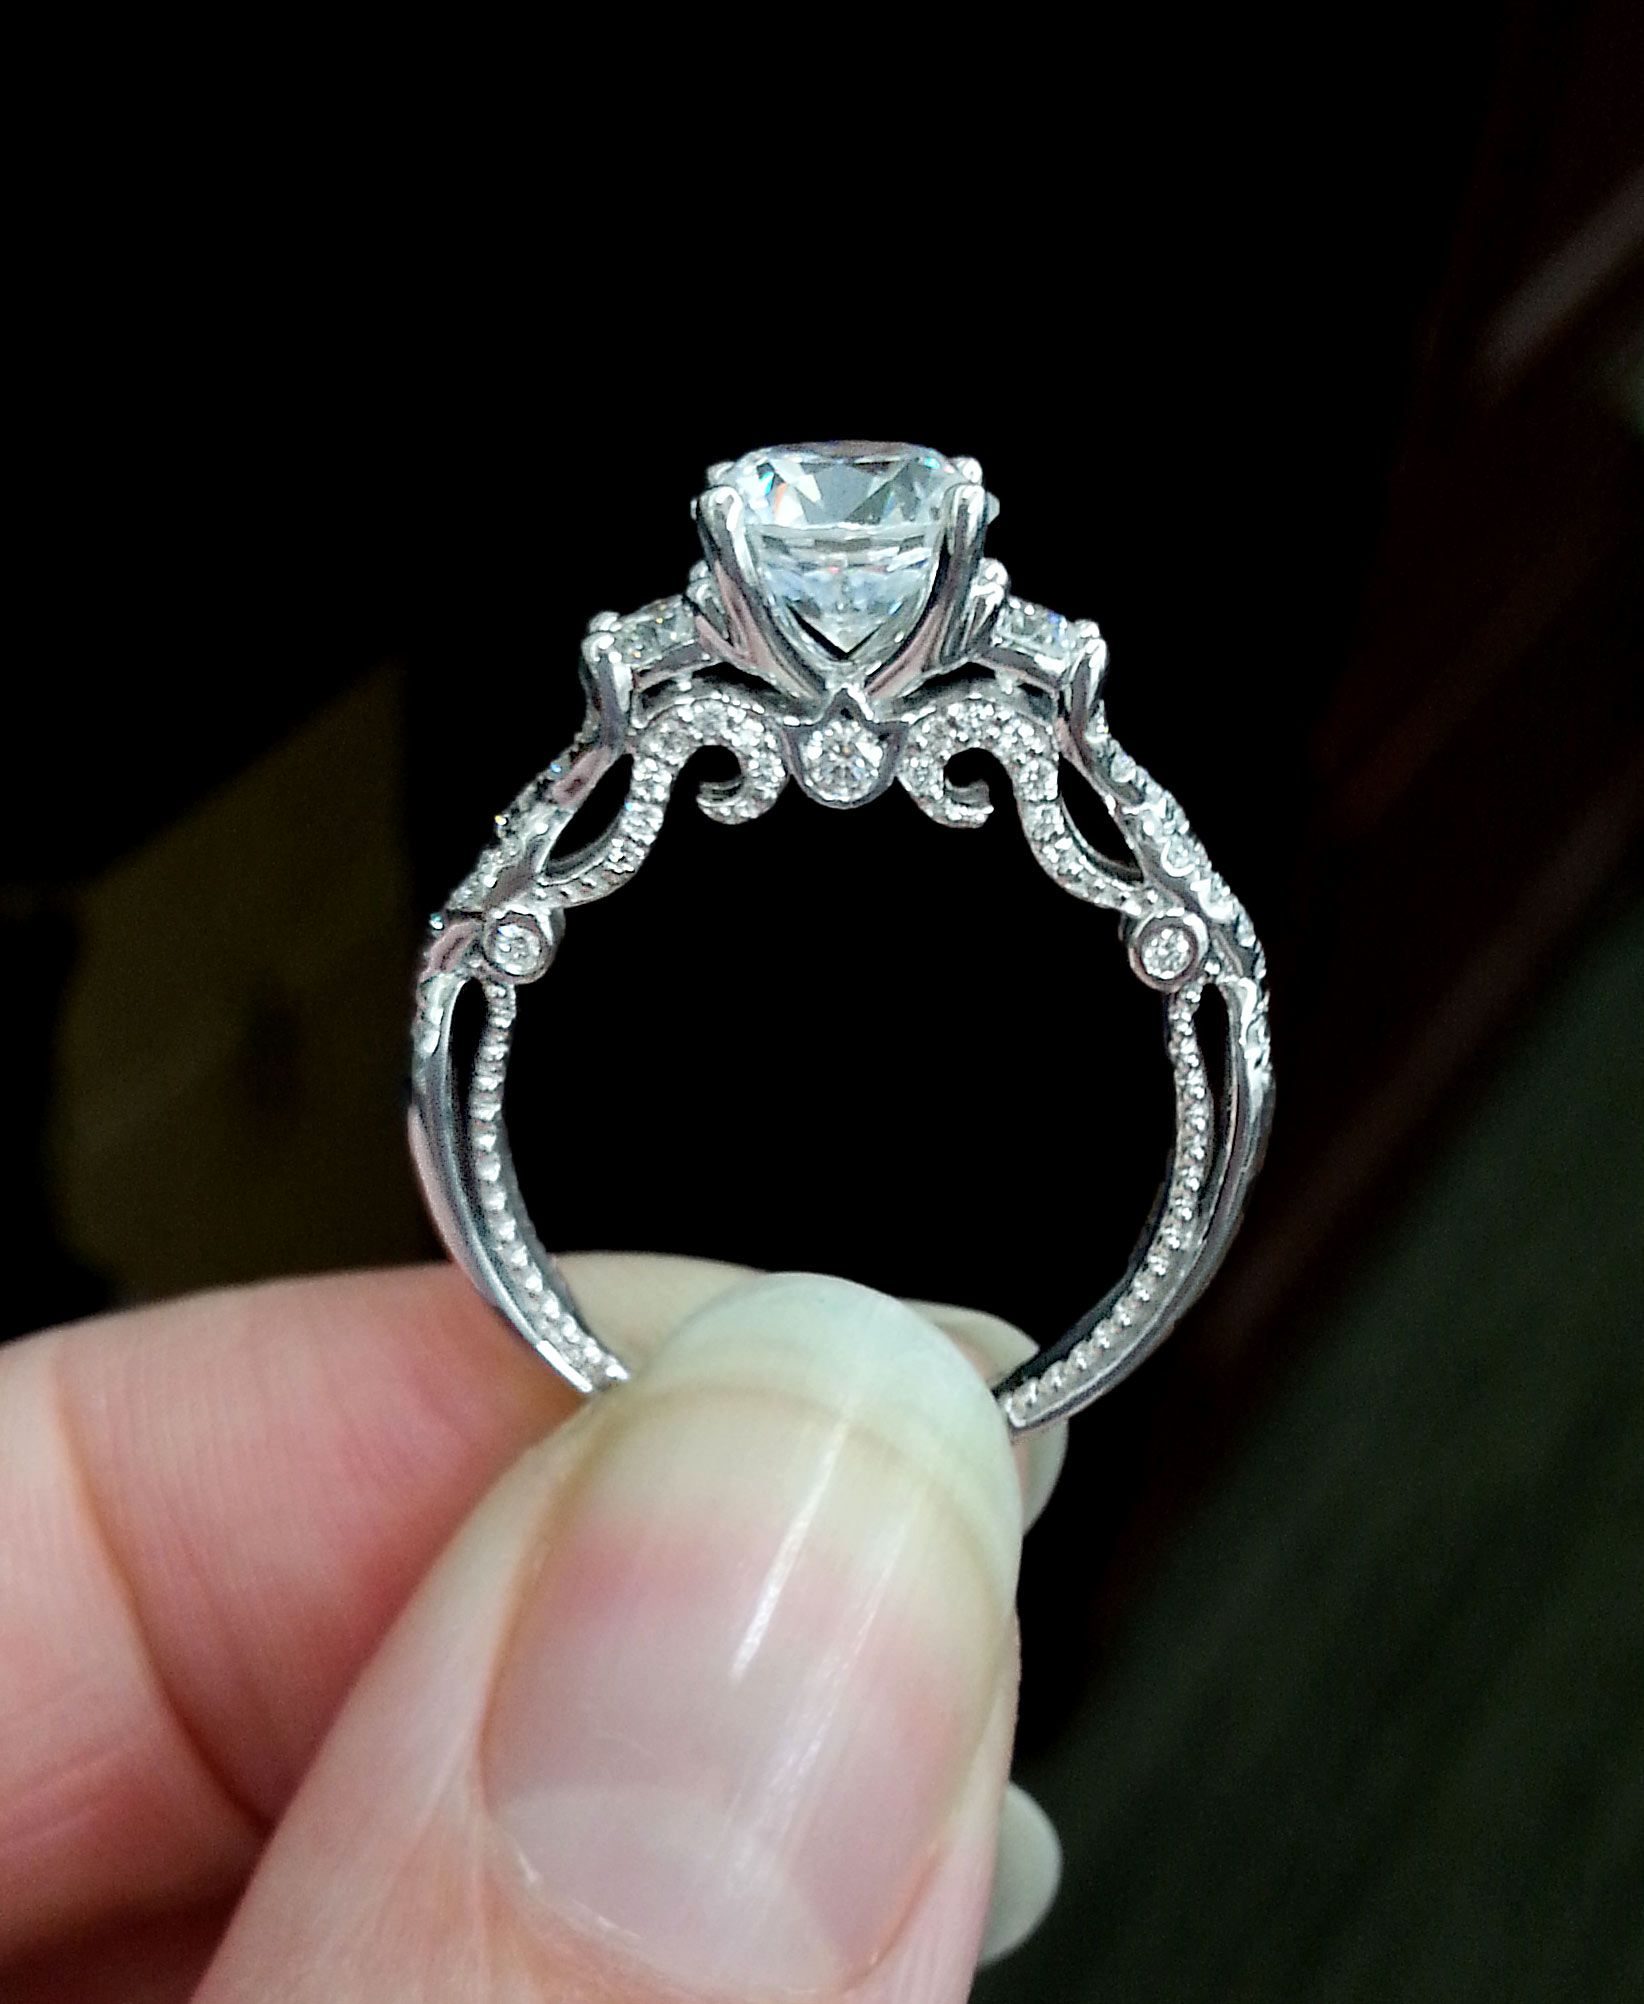 verragio engagement ring style 7074 from the insignia collection